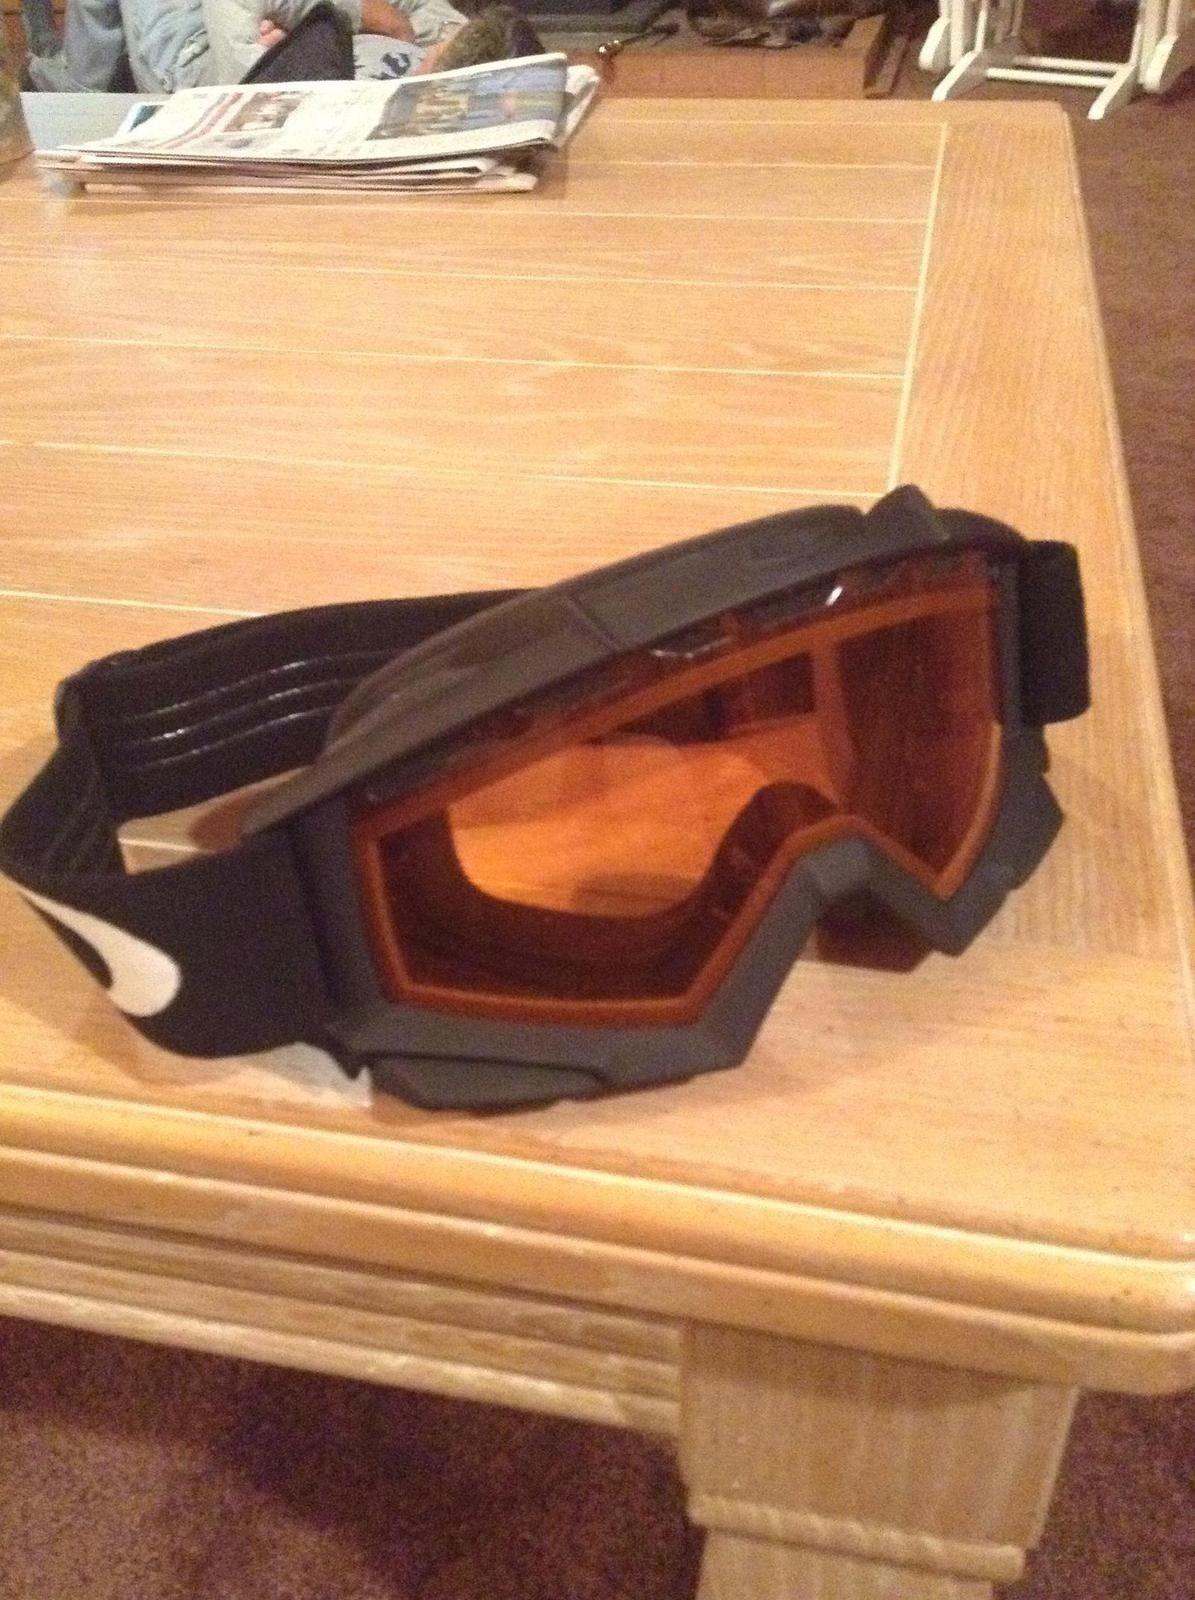 What Goggles Are These? - BYr4A9U.jpg